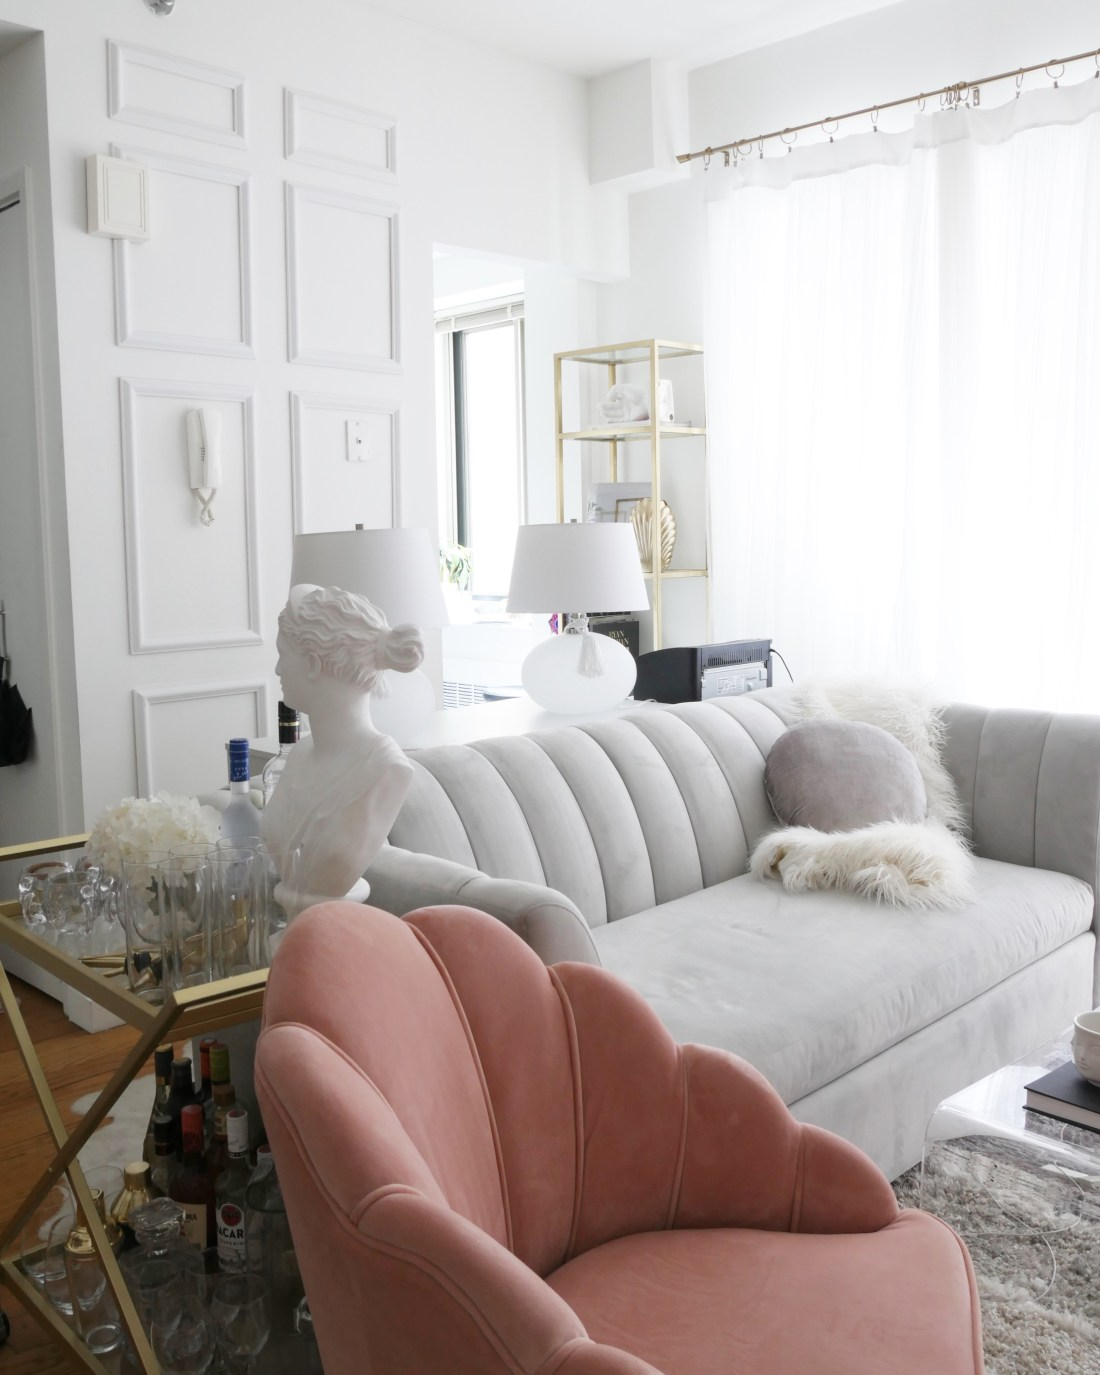 Decorating walls in a rental might feel frustrating, but it's actually super easy! If you want to add wainscoting to your rental home or apartment, you're in luck! Here's a tutorial on how to add REMOVABLE wainscoting to a rental! #rentalhomedecorating #rentaldecorating #redecoratingonabudget #smalllivingroomideas #smallapartmentdecorating #redecroatinglivingroom #redecoratingbedroom #livingroomideas #walldecor